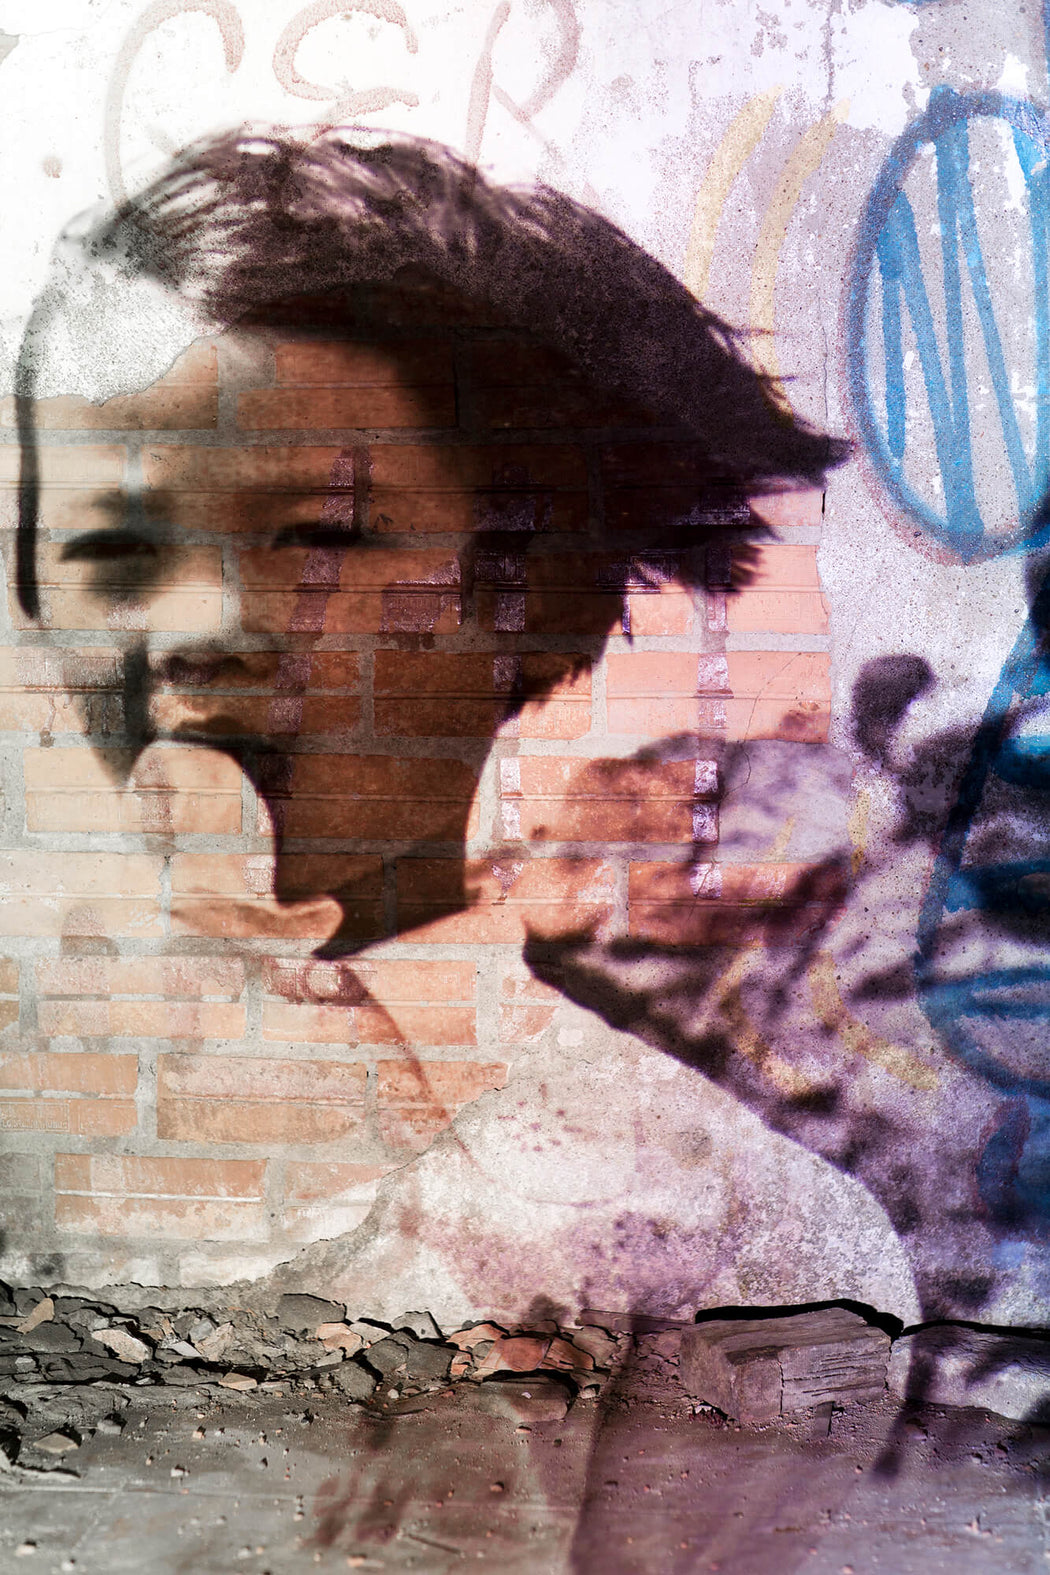 FFOTO-Olivia Marty-Daddy, Why Must This War Be? (projected on a graffiti wall in an abandoned house, in Tran Nao, Saigon)